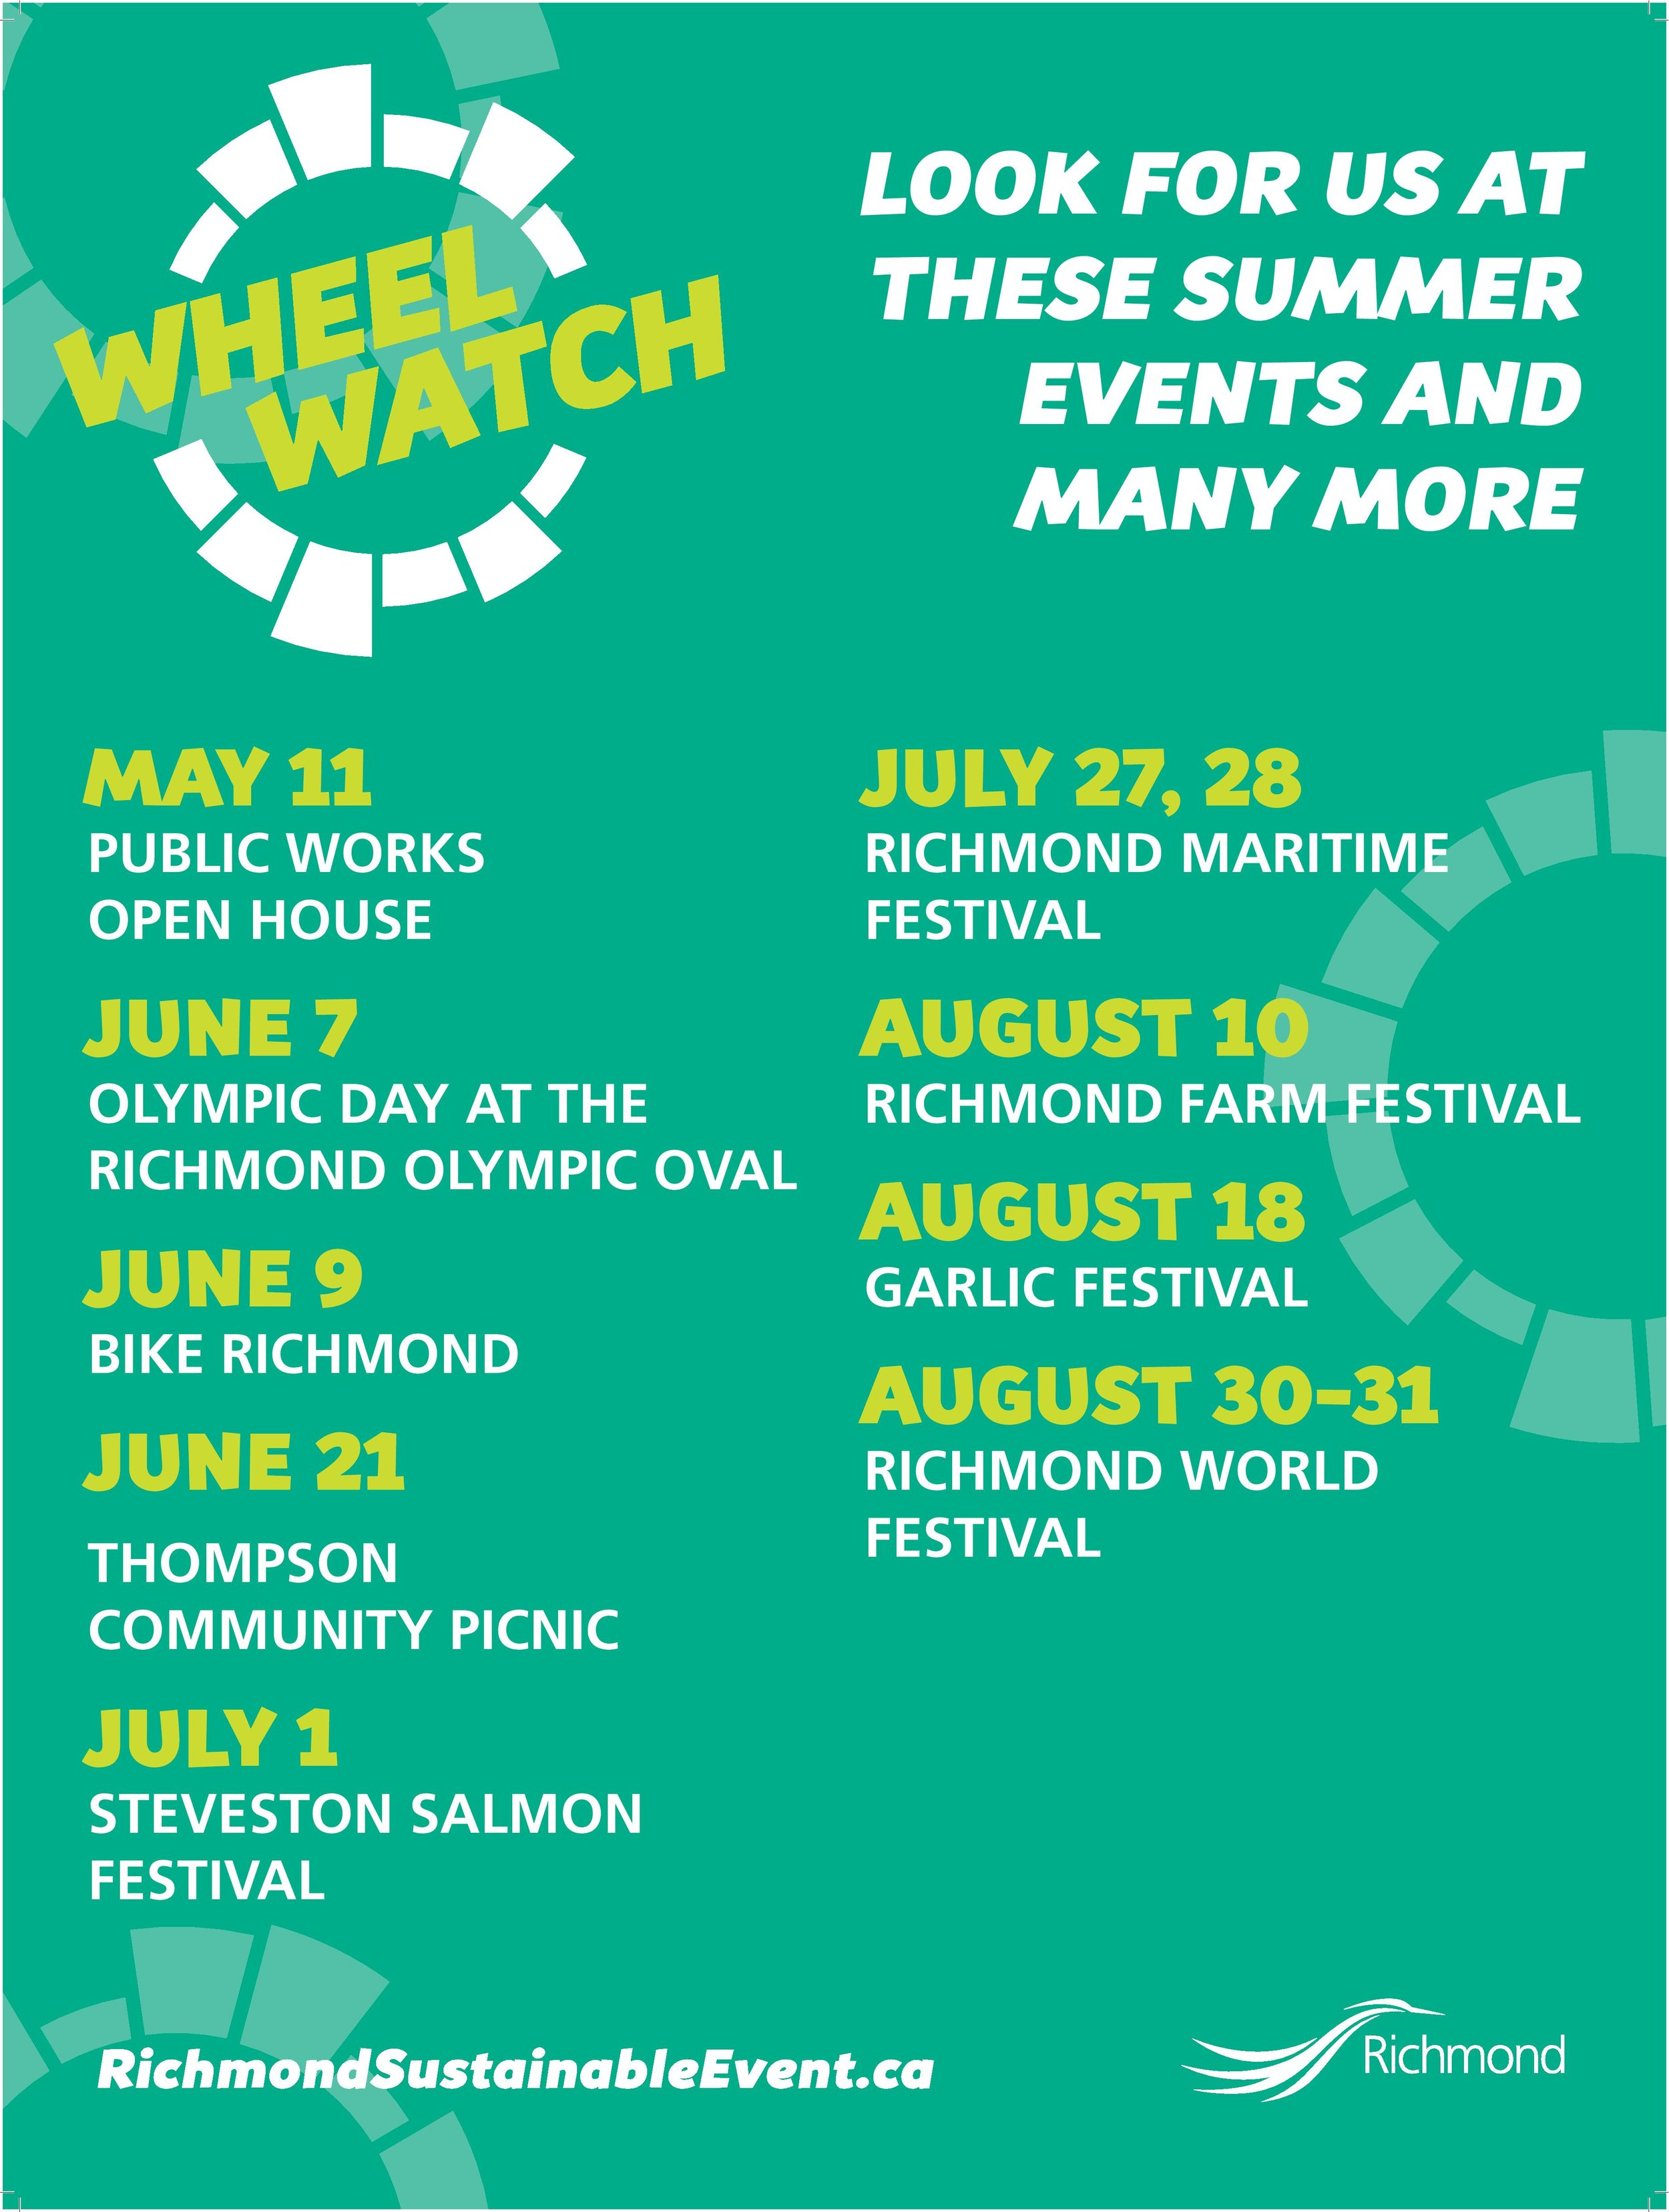 2019_Wheel Watch_A-Frame Graphic_24x32in-page-001.jpg